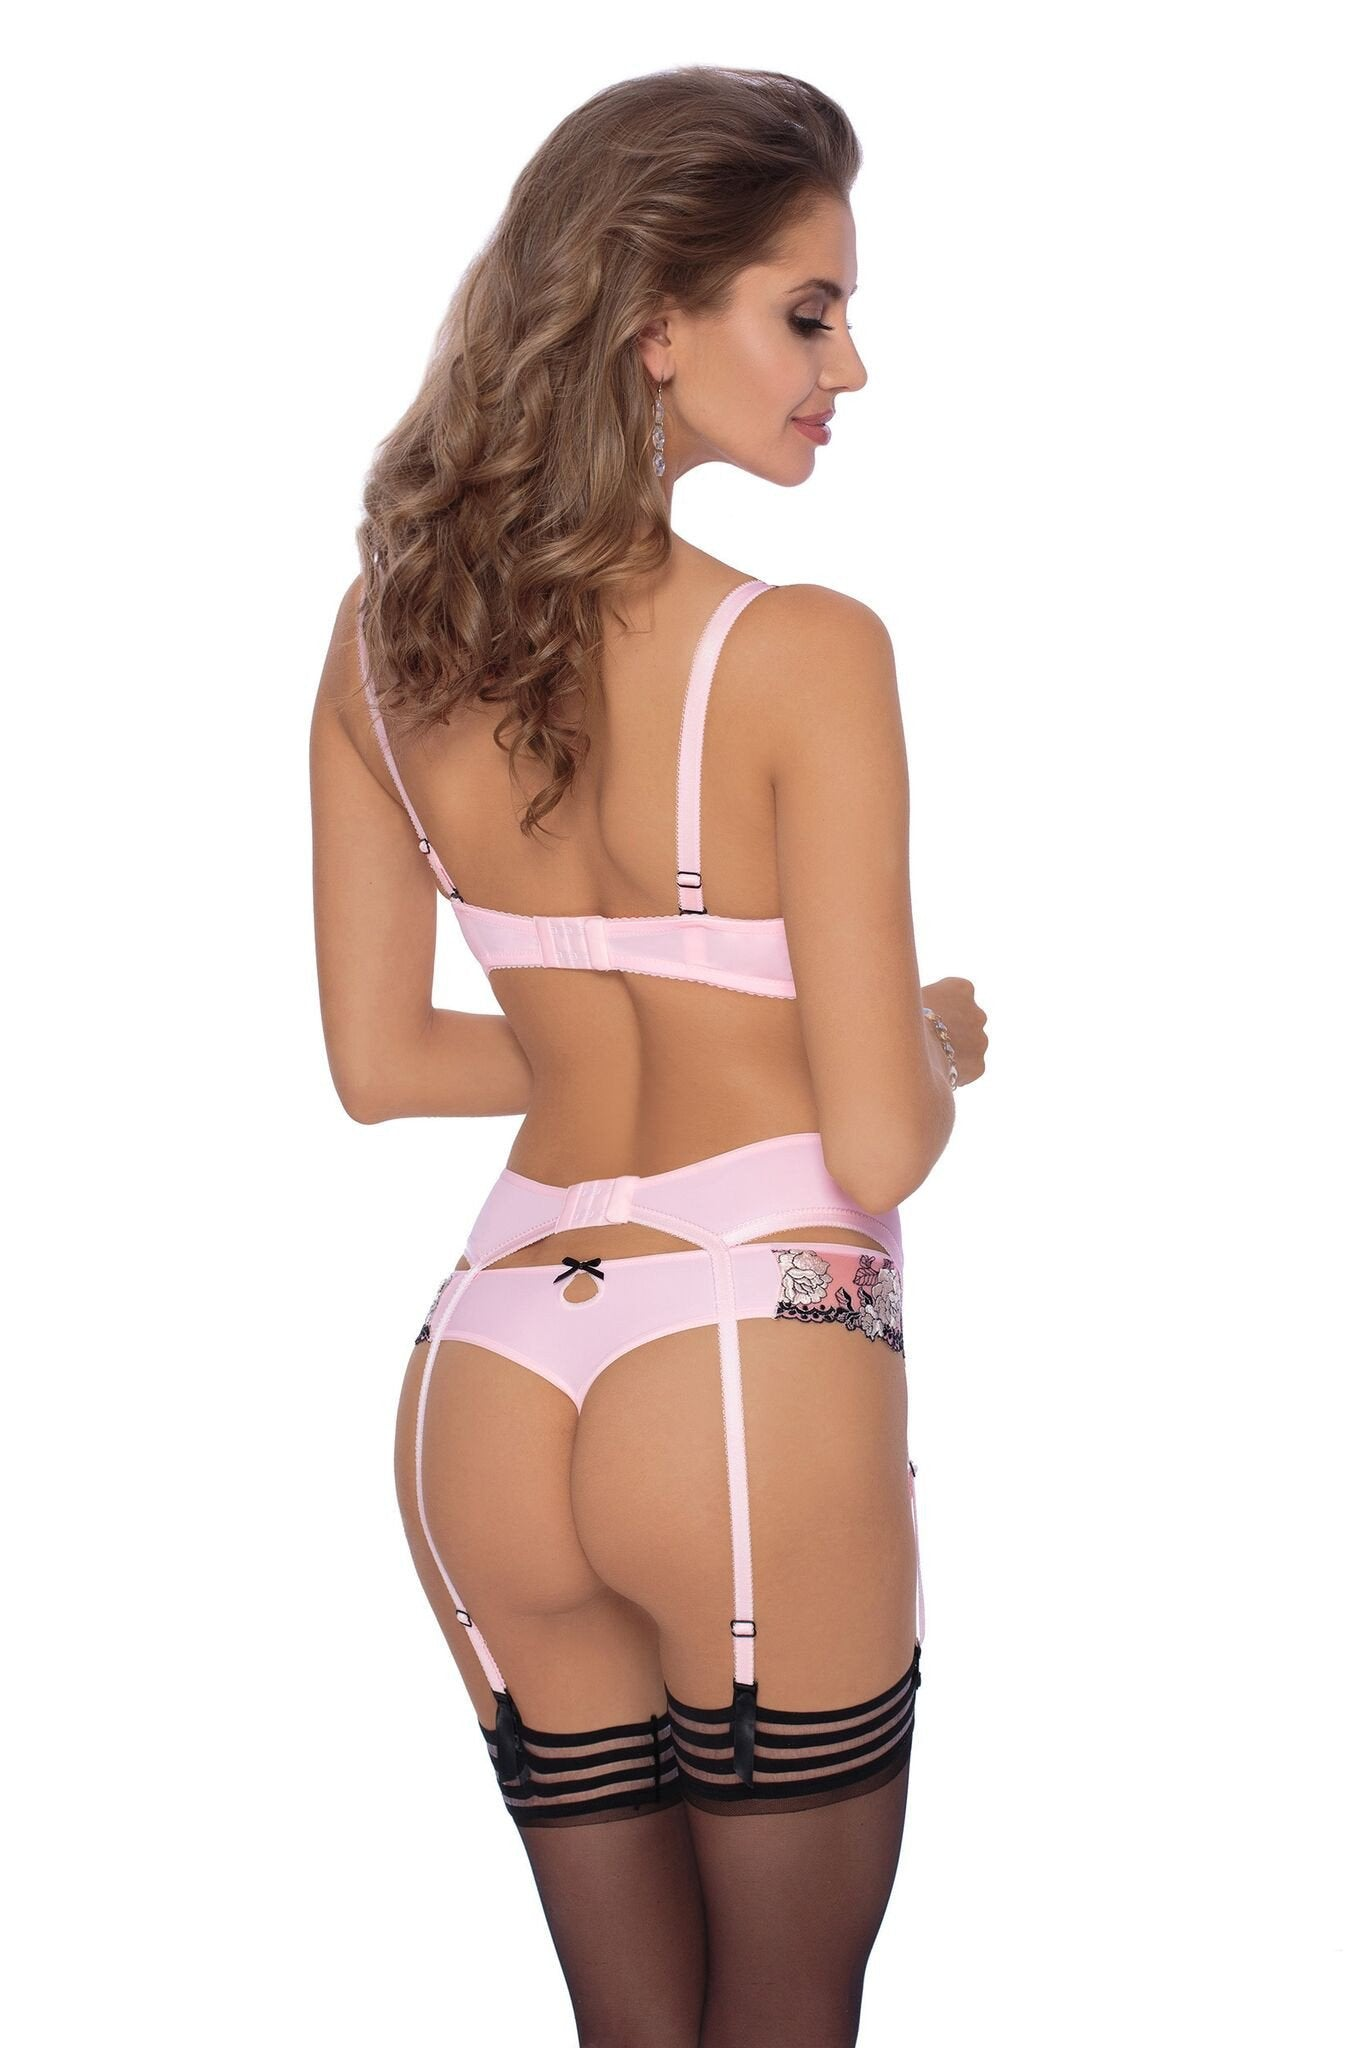 b147115be5 Roza Natali Suspender Belt (Pink) - Suspender Belts - Roza - Charm and Lace